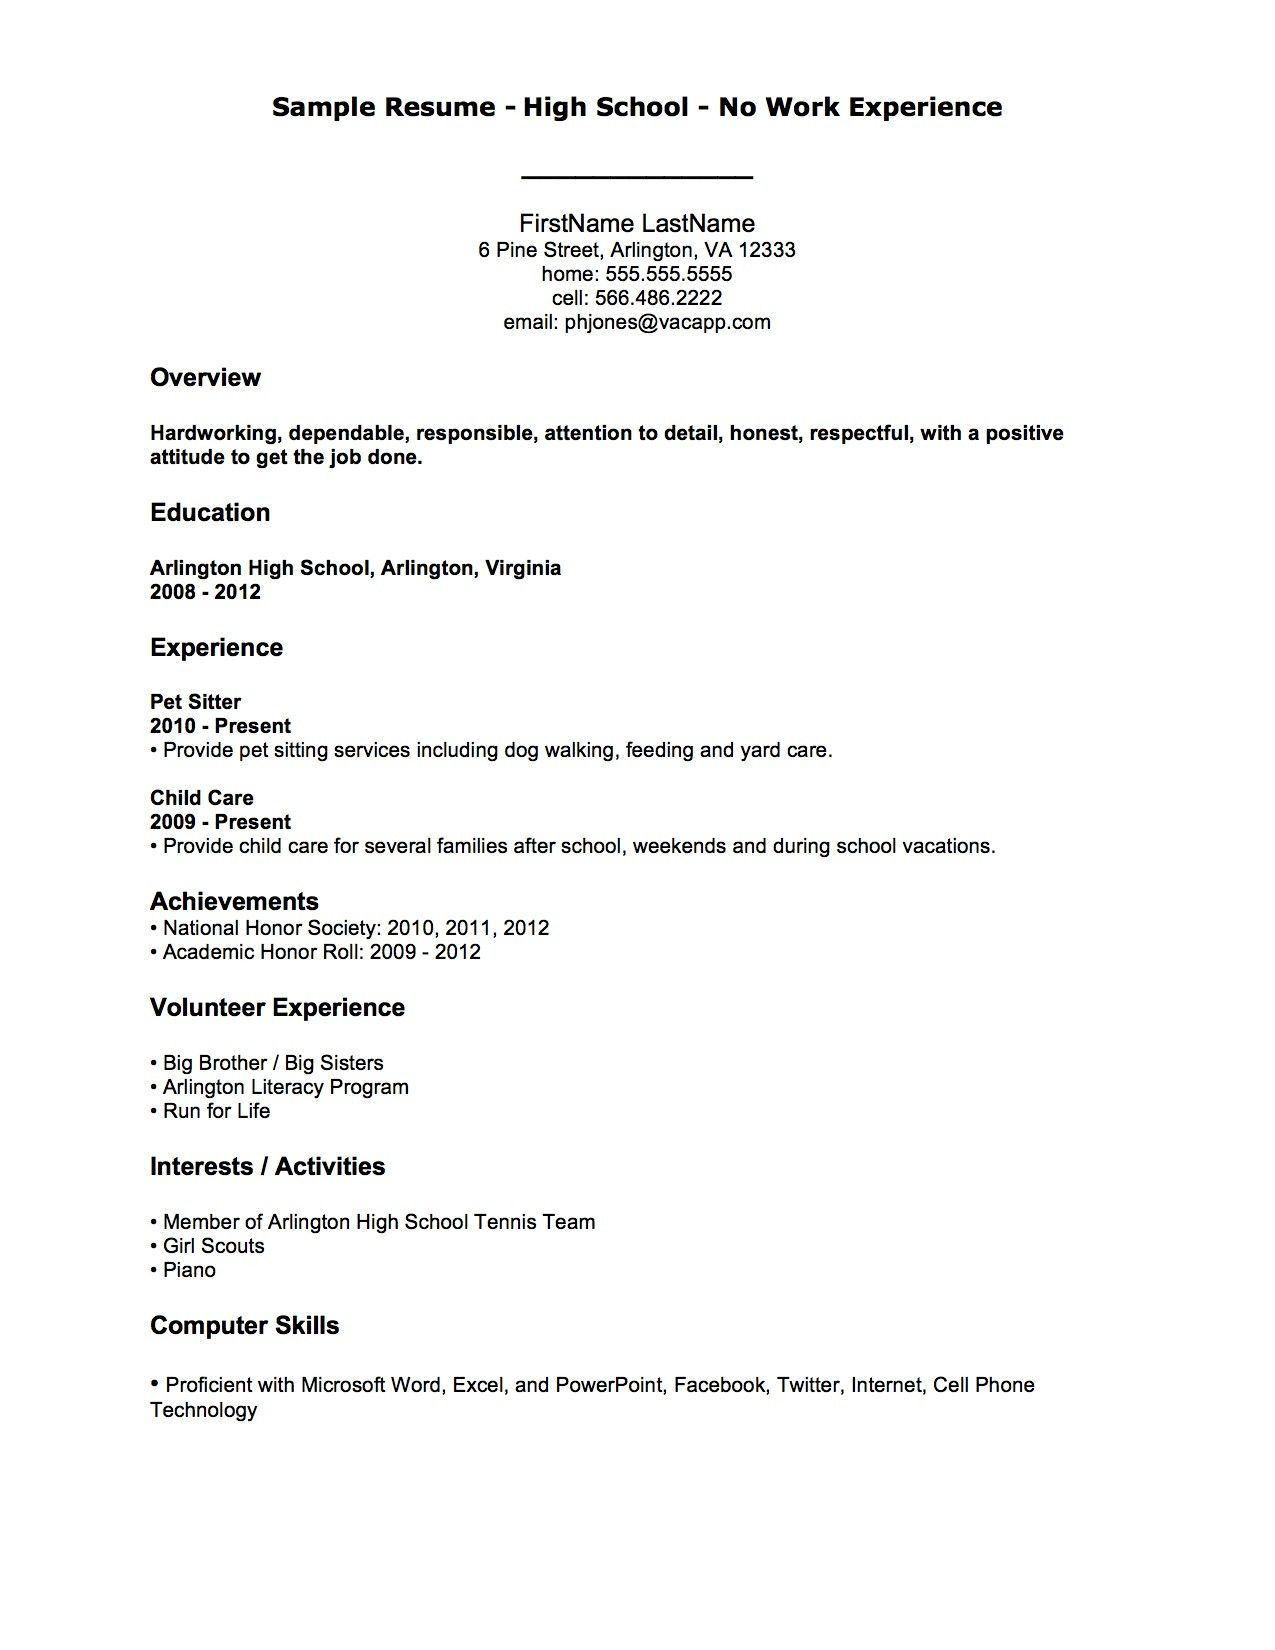 Resume For A Job How To Write A Resume For A Job With No Experience  Google Search